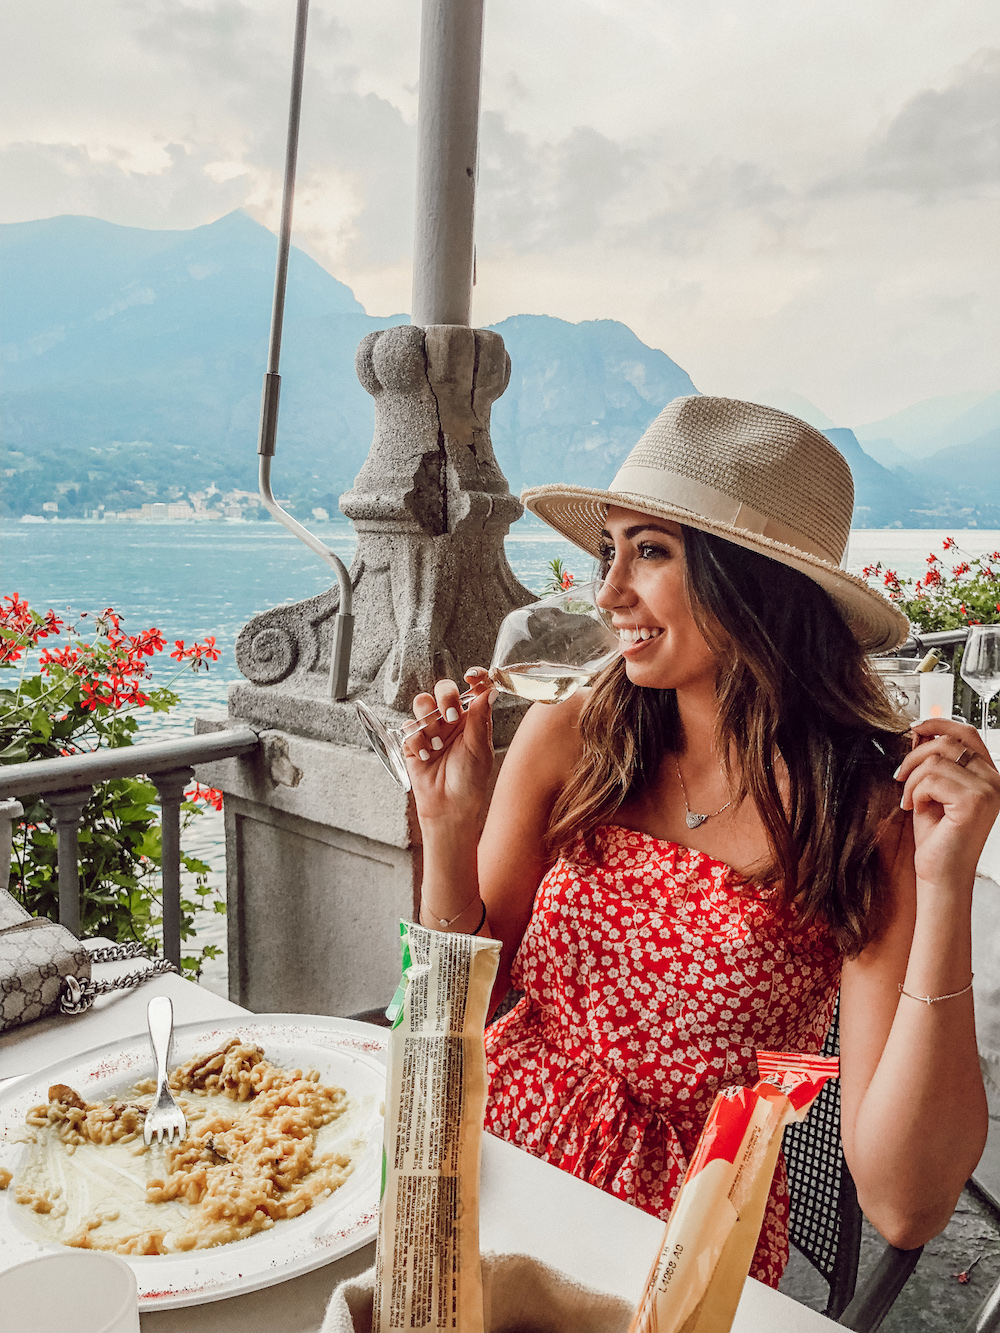 JUST THINKING ABOUT THIS DINNER MAKES ME WANT TO CRY… - A glass of my favourite wine, truffle risotto with fresh parmesan and a view. I'll never forget.